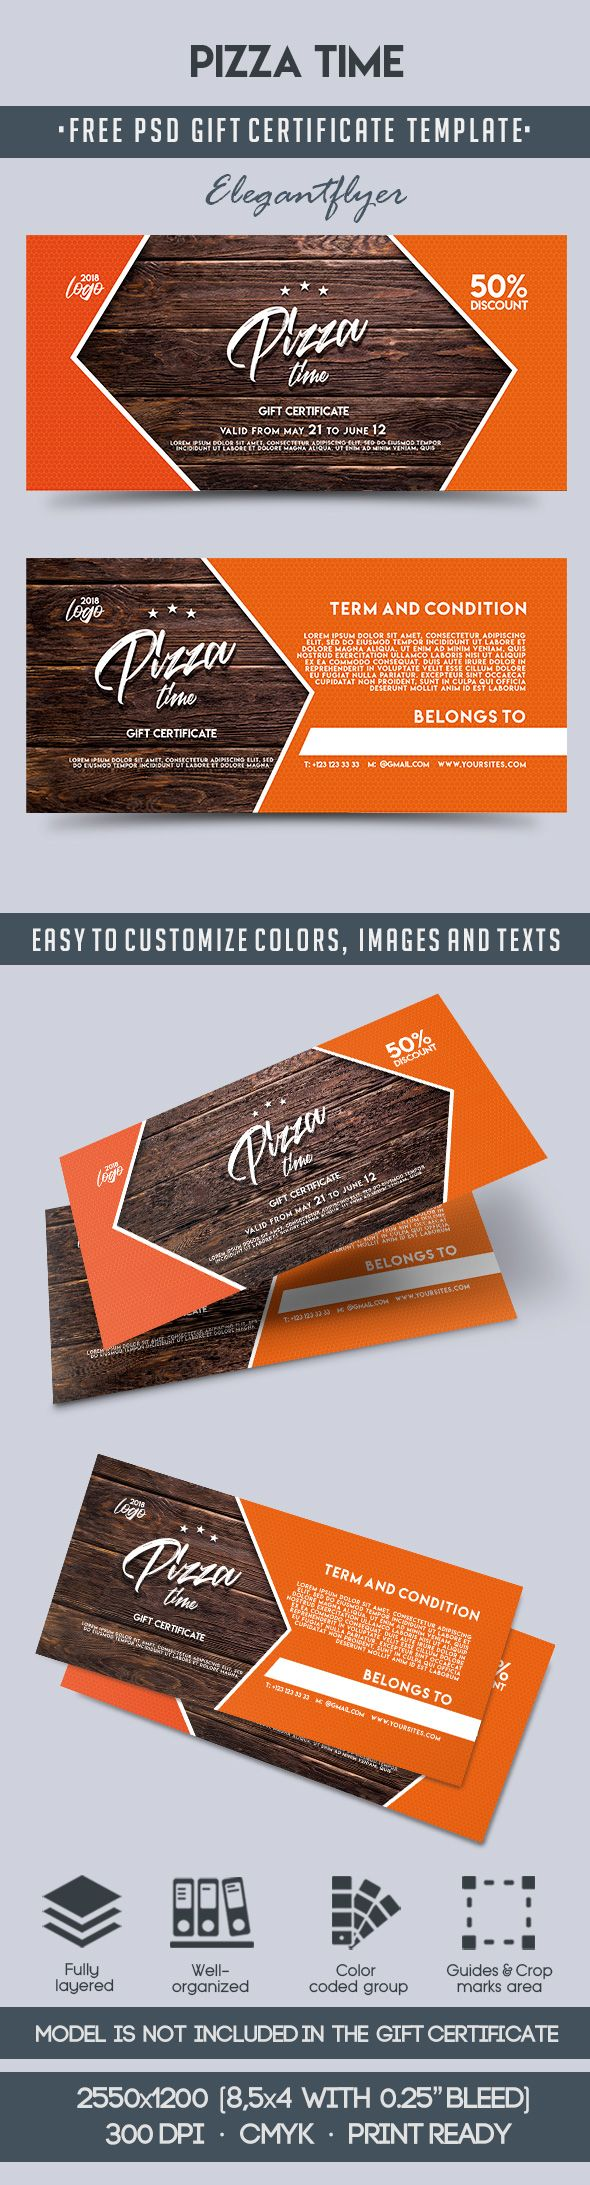 Pizza Time – Free Gift Certificate PSD Template